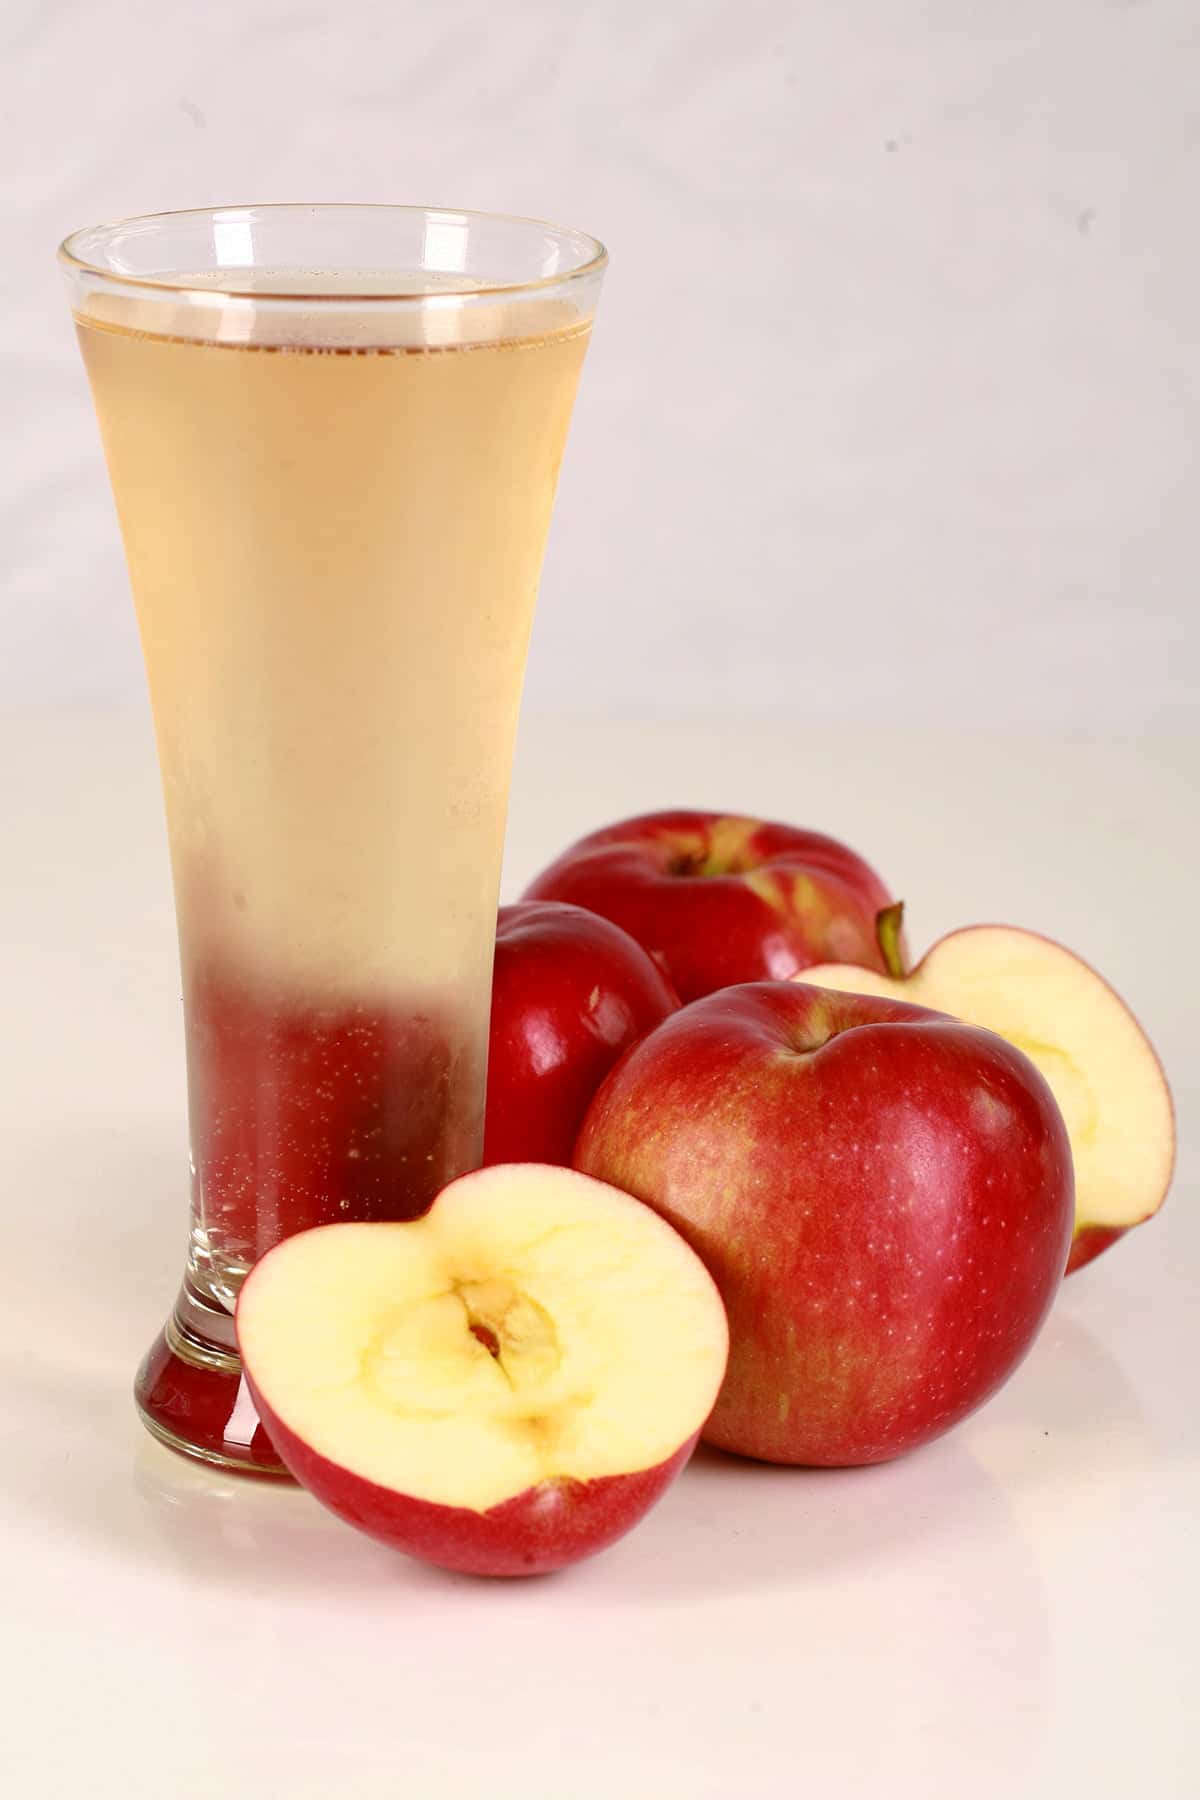 A glass of home brewed hard apple cider, made using this hard apple cider recipe.